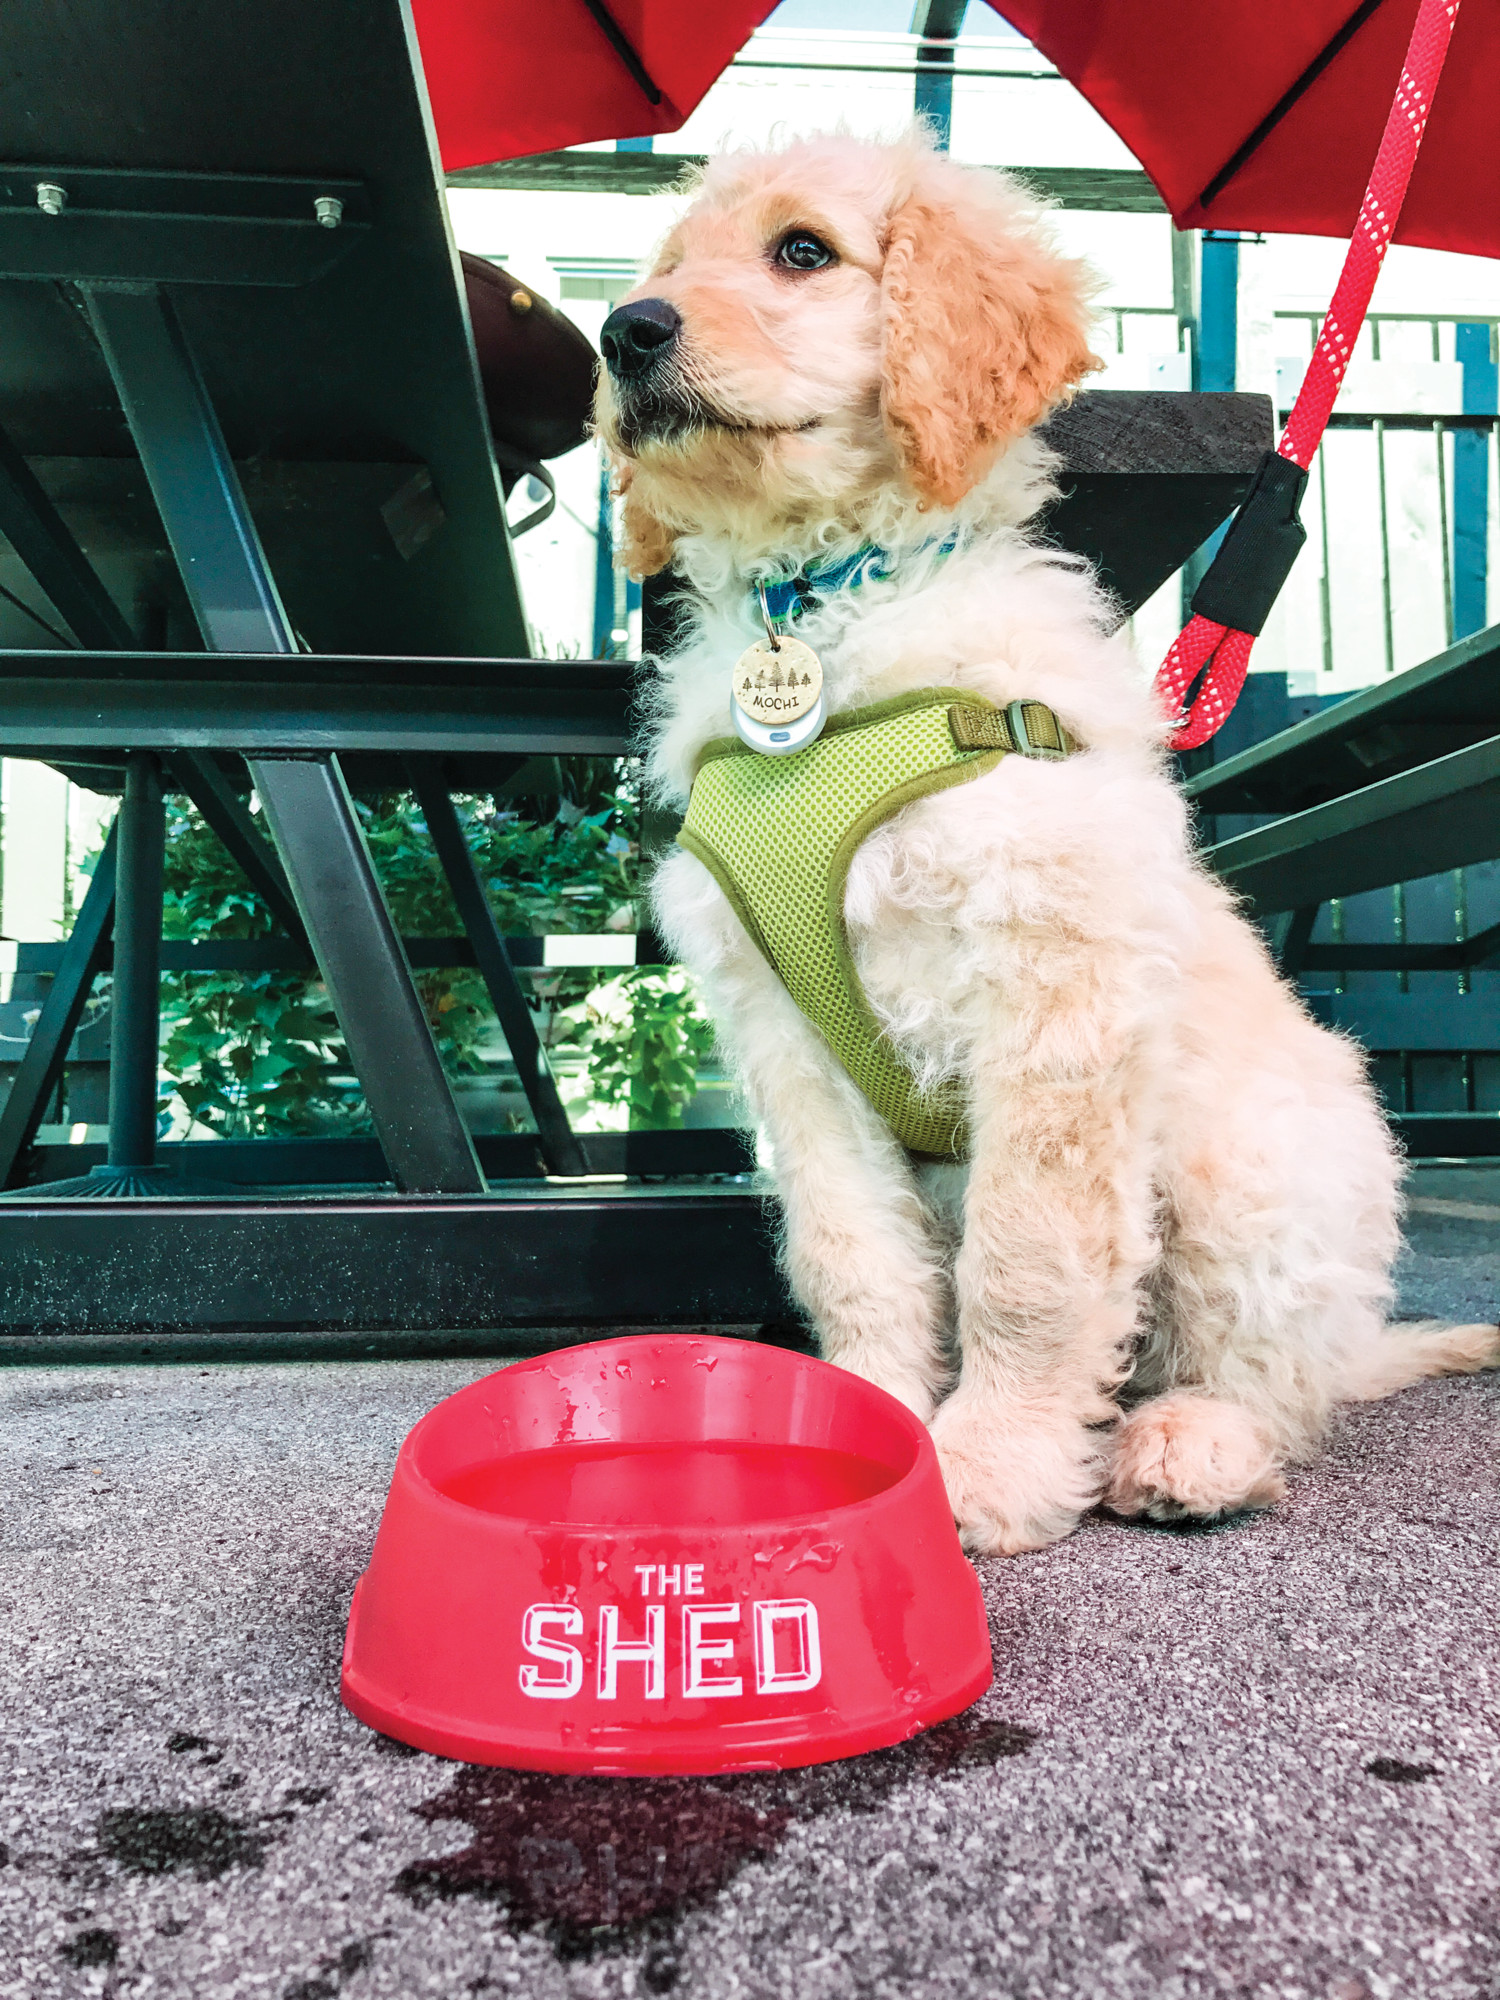 Dog at The Shed restaurant with water bowl.